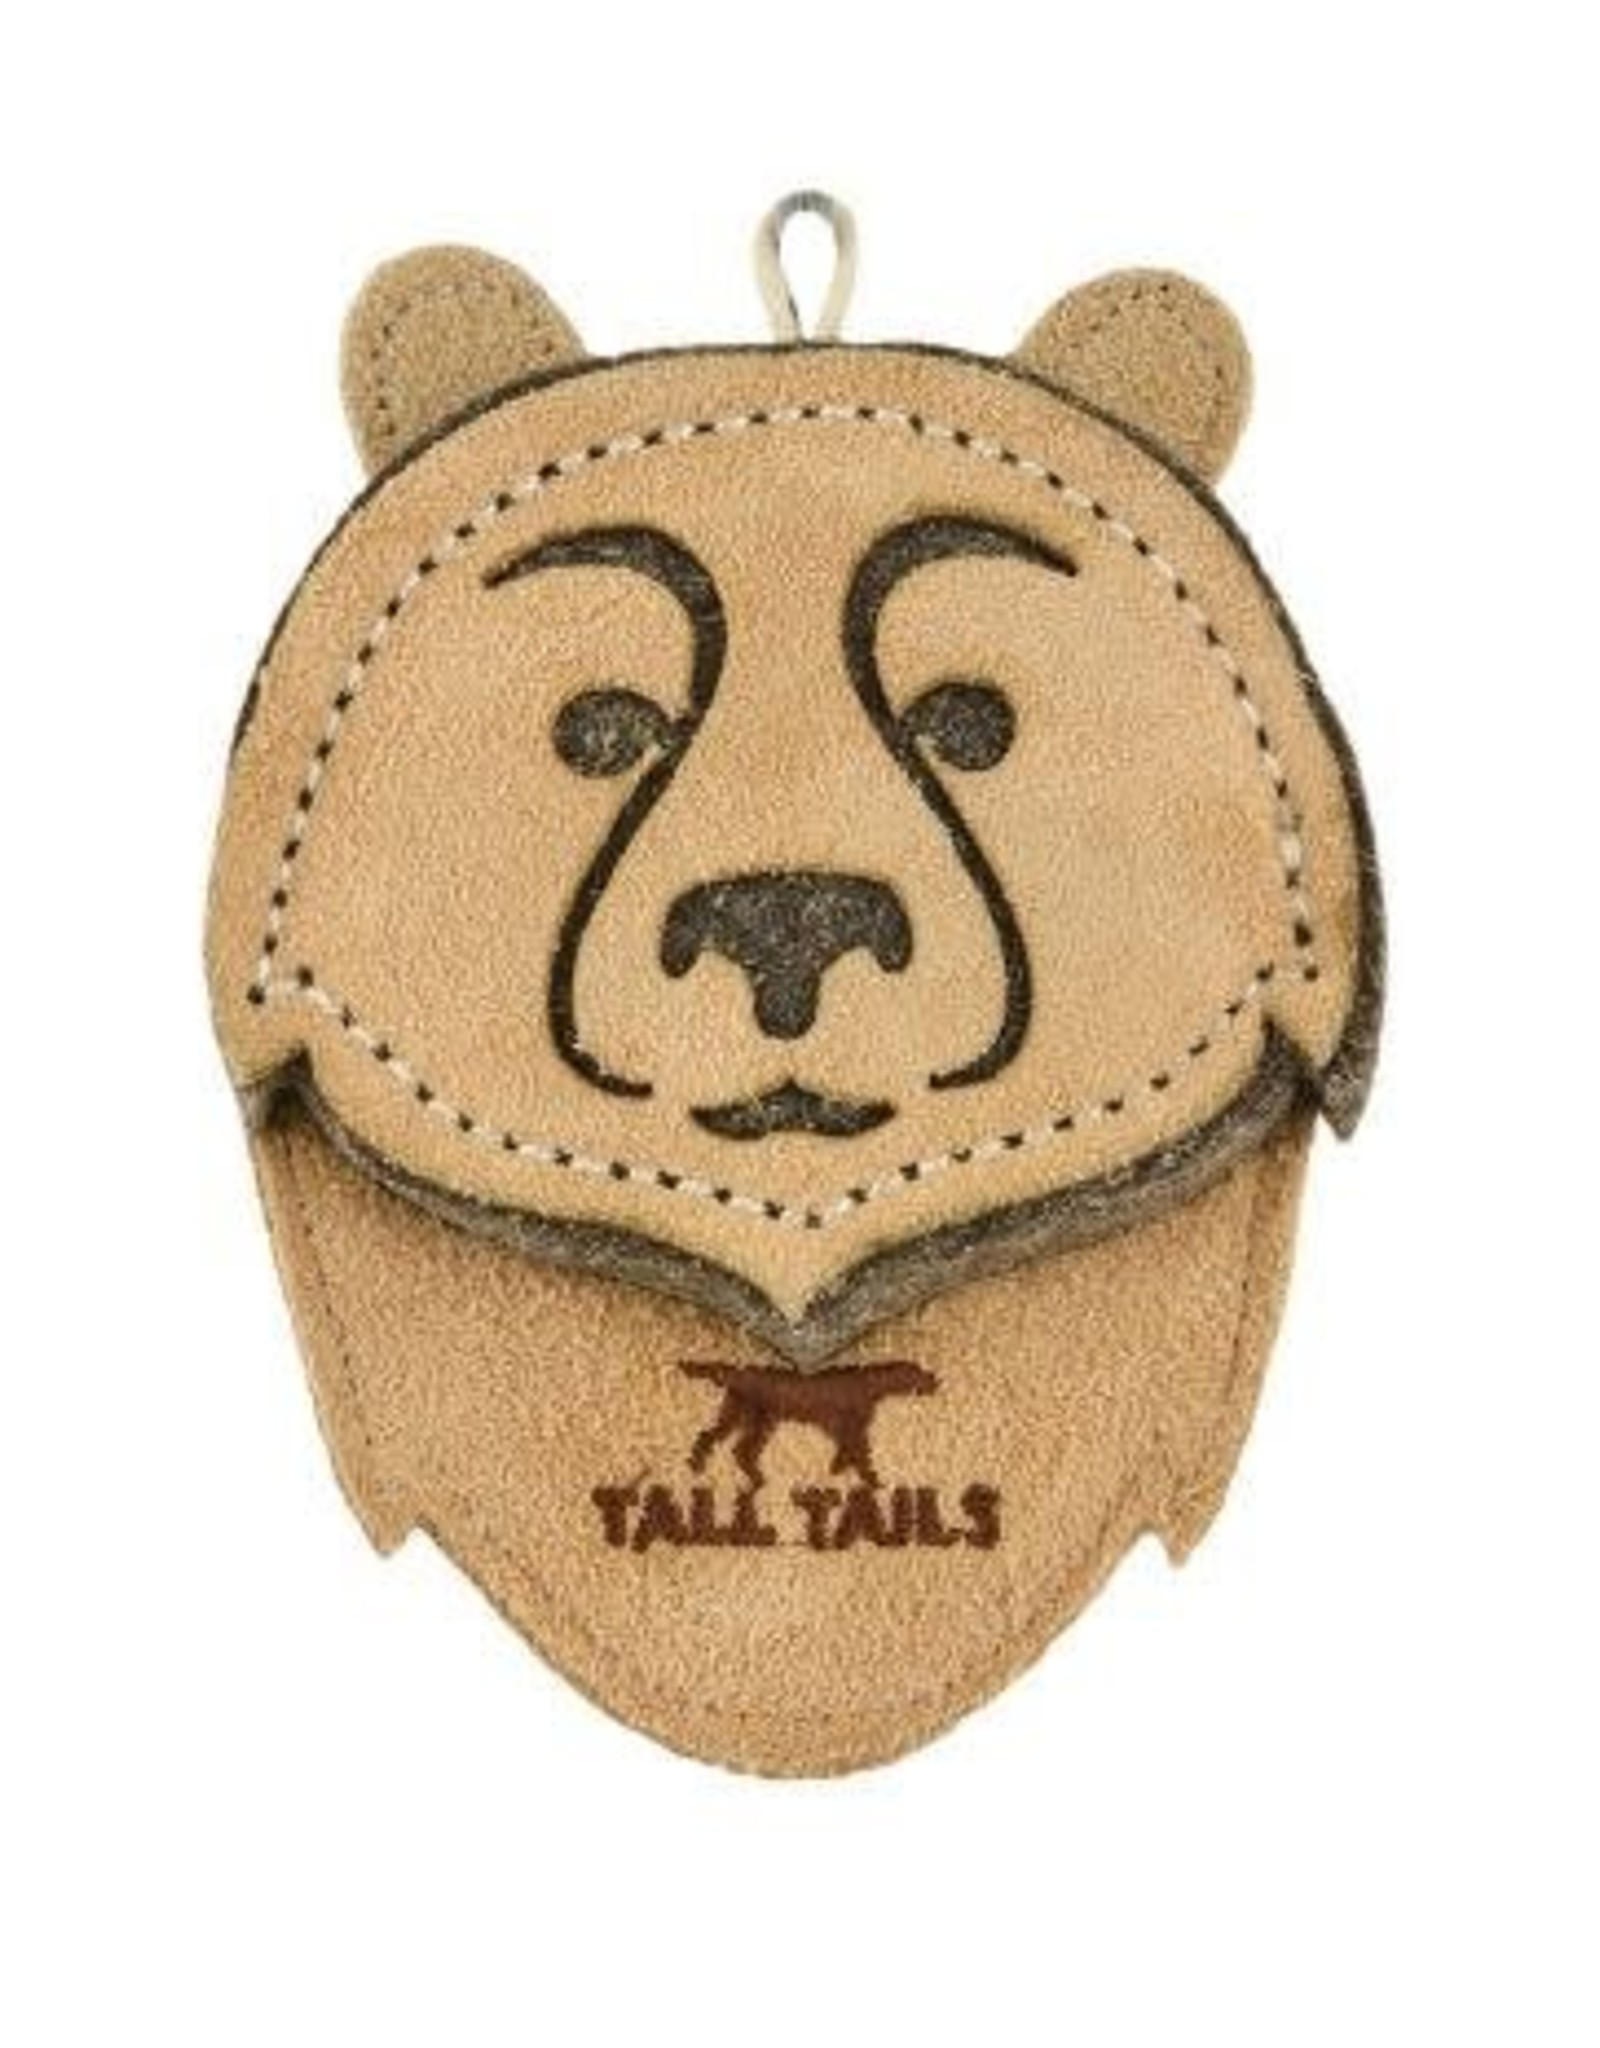 Tall Tails Tall Tails Natural Leather Bear Toy